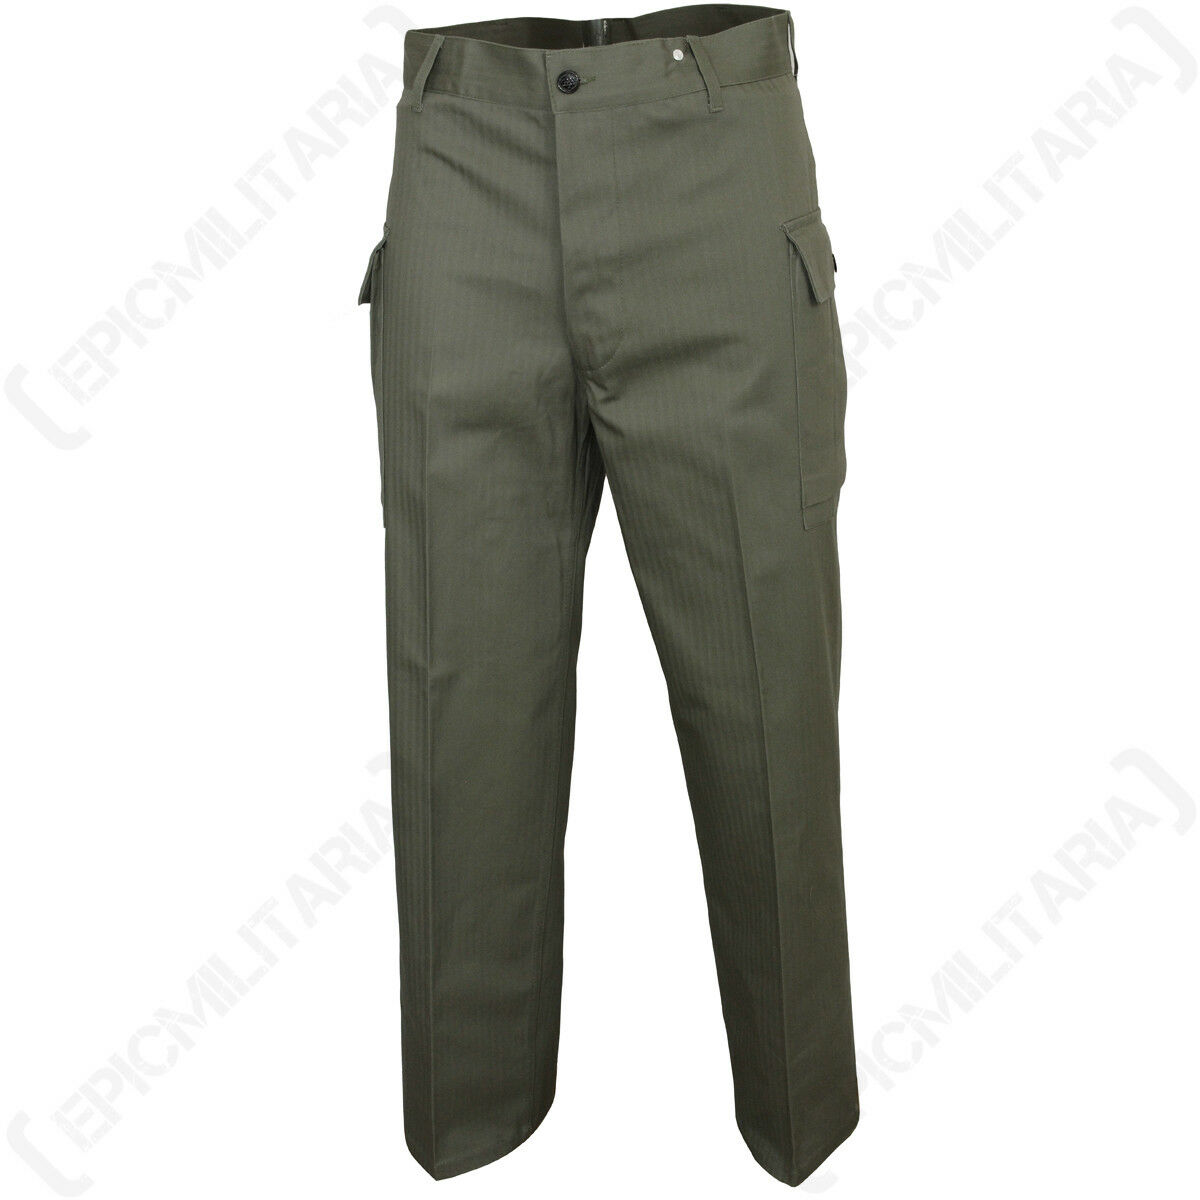 American HBT Trousers - US Army WW2 Repro Military Green All Sizes Pants New